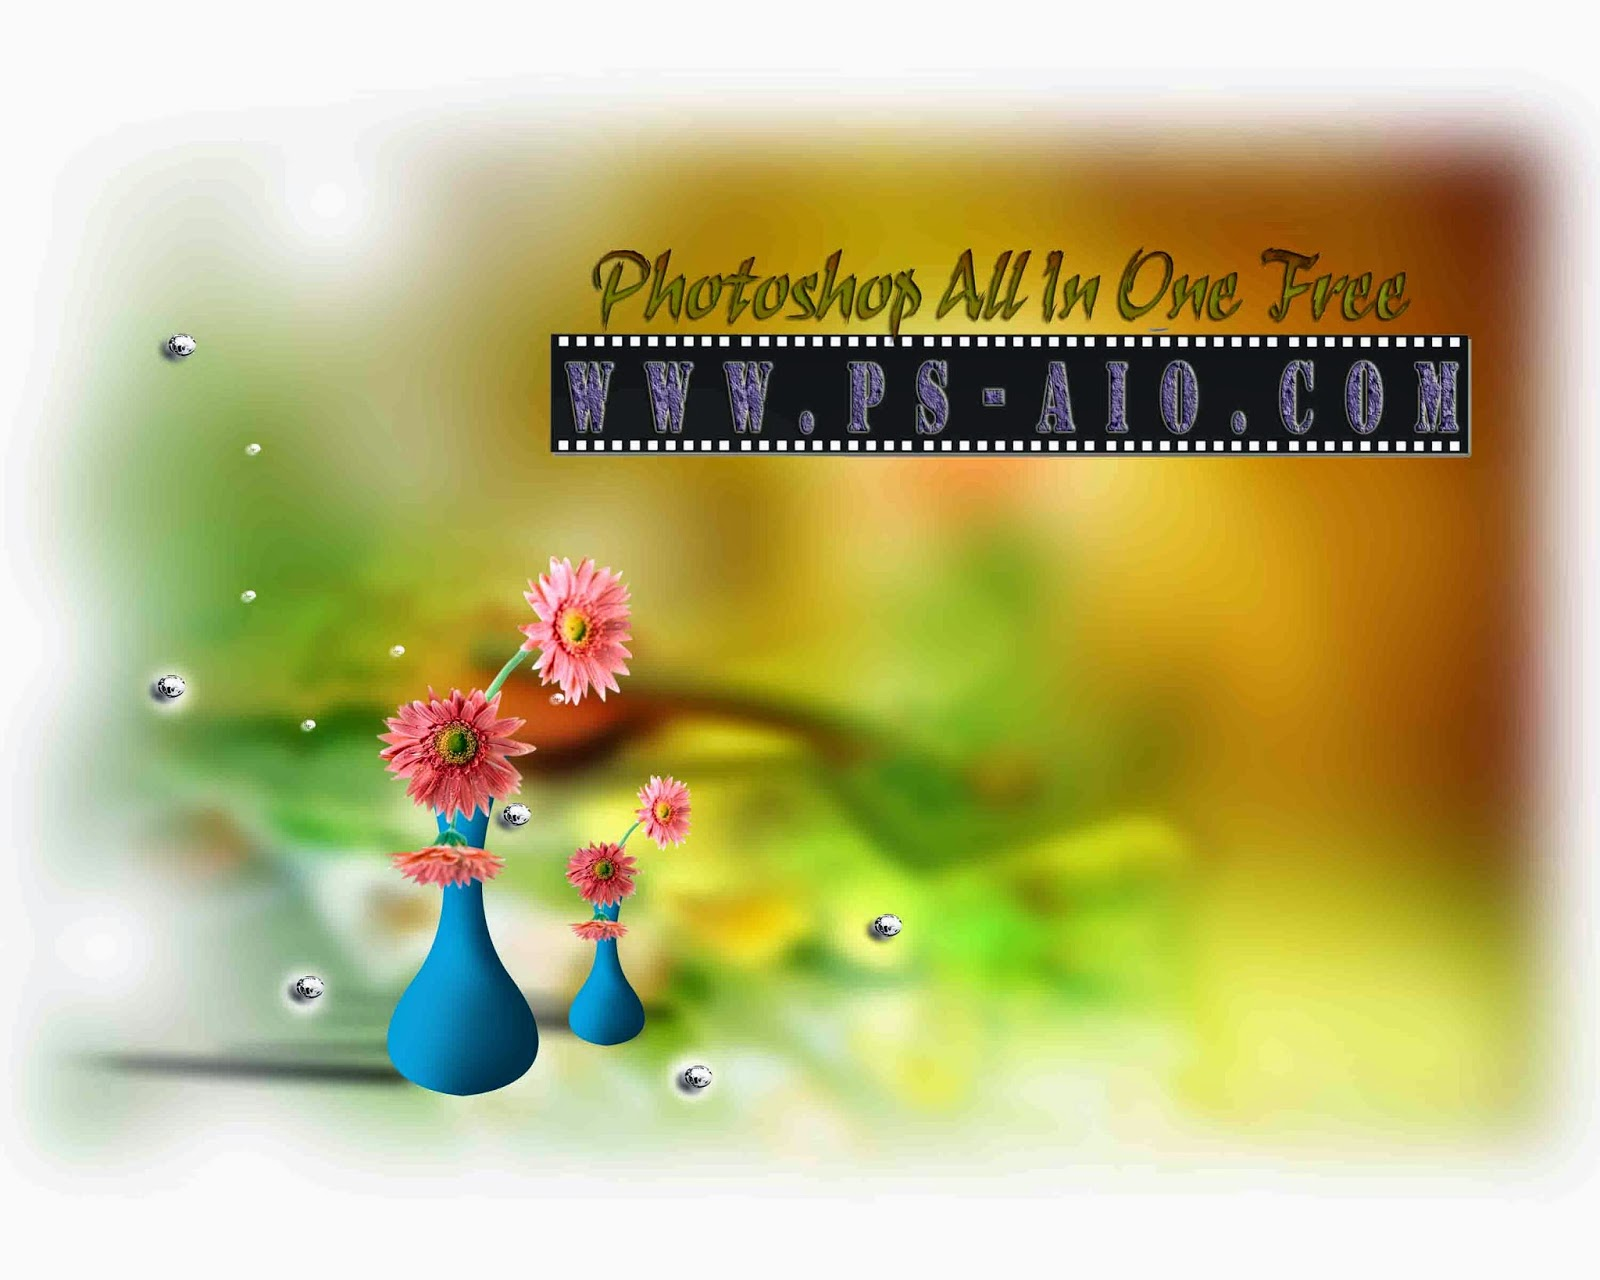 Photoshop Indian Wedding Psd Background Collection Free ...